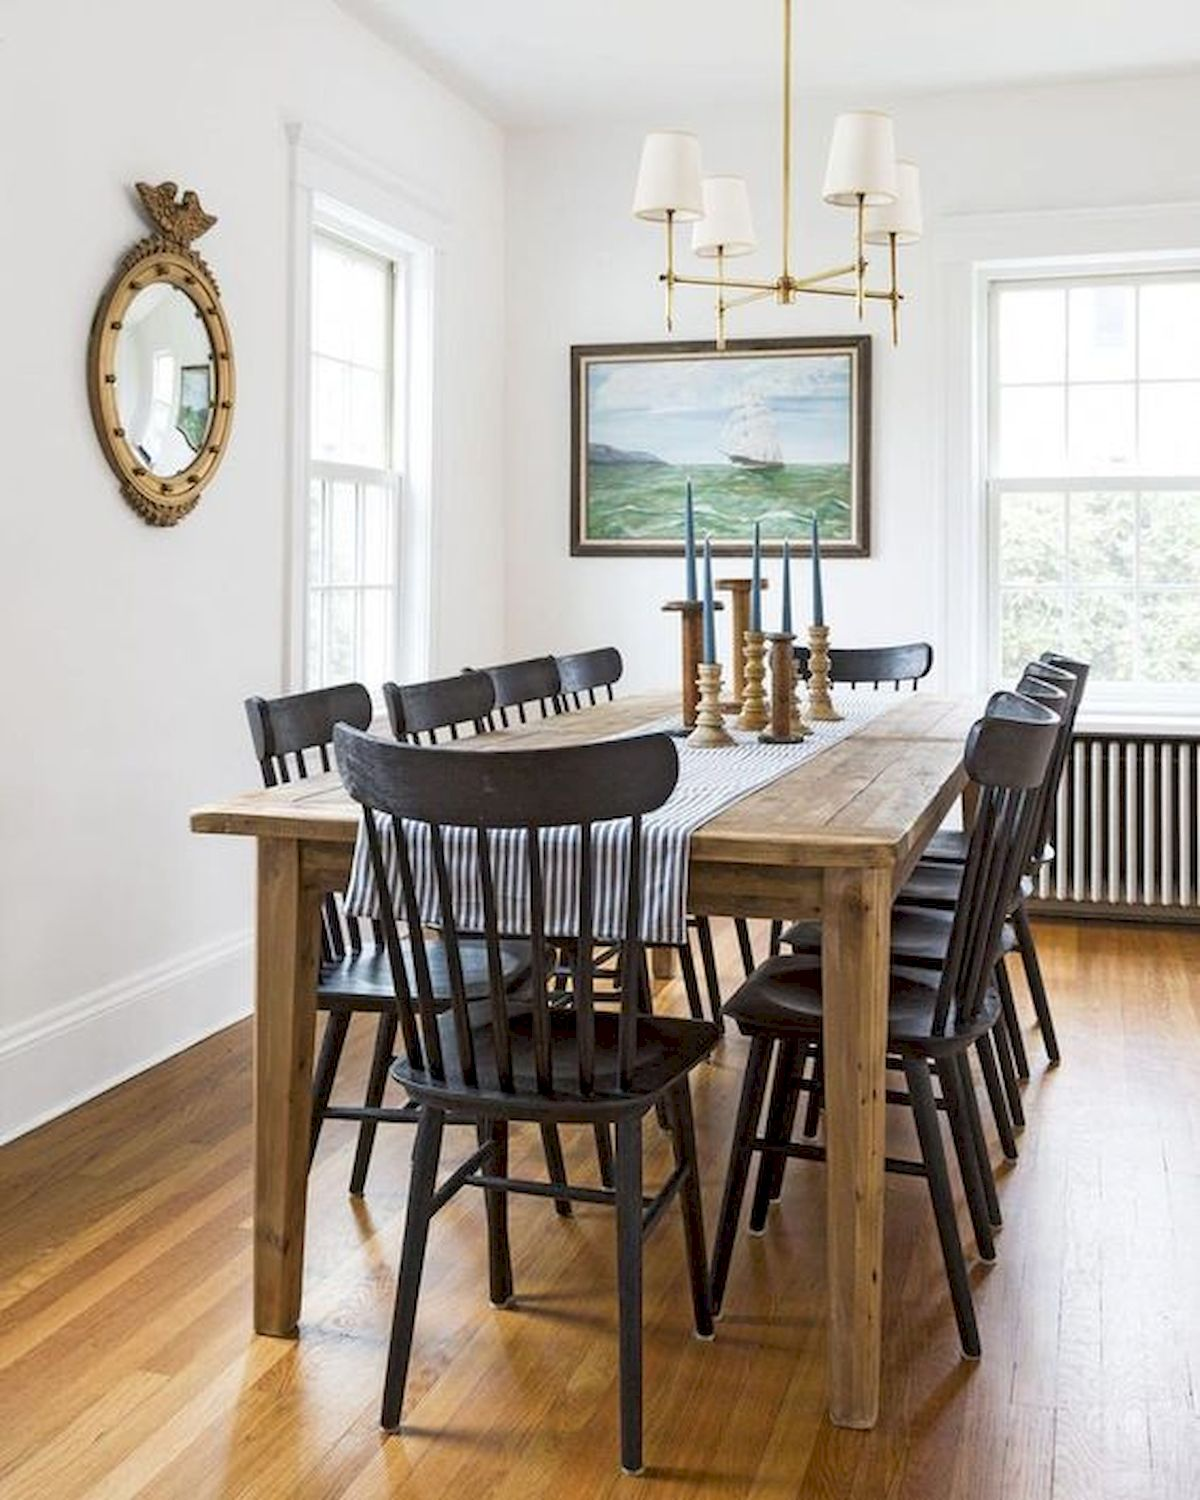 30 Best Farmhouse Table Dining Room Decor Ideas: 30 Best Farmhouse Table Dining Room Decor Ideas (20